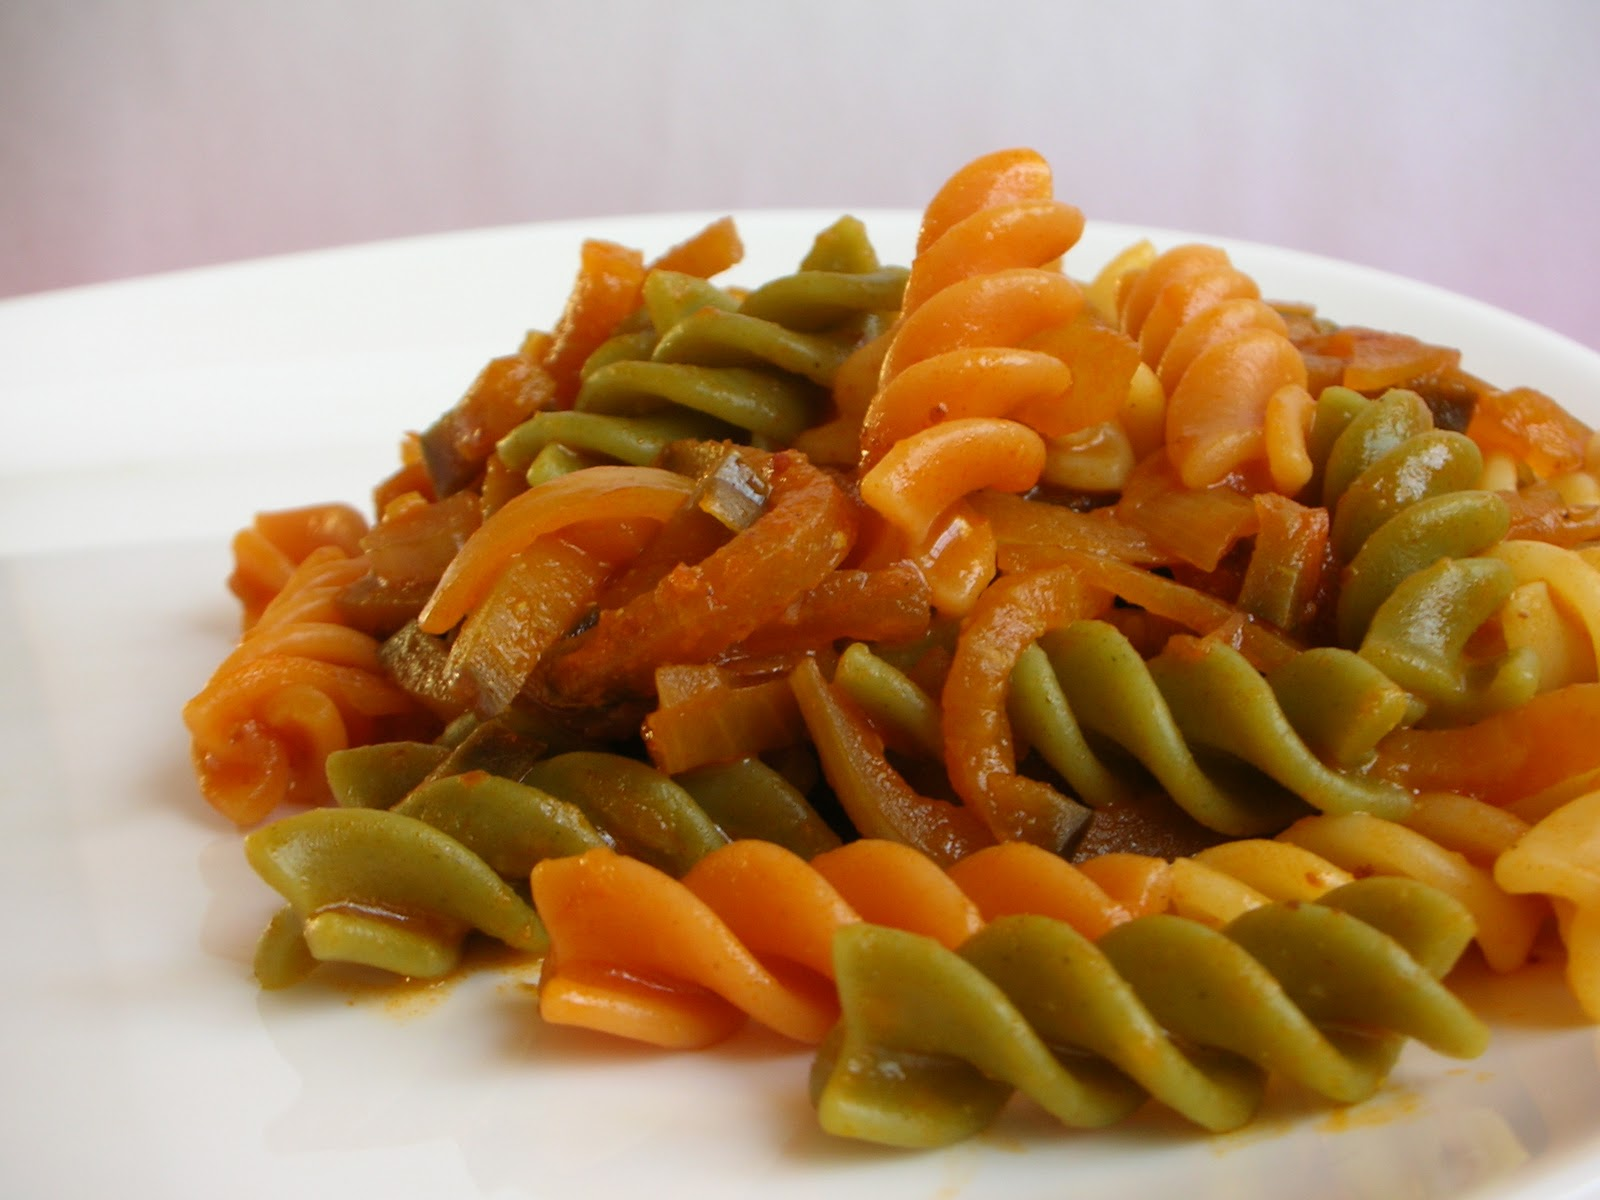 Eggplant and tomato sauce with pasta